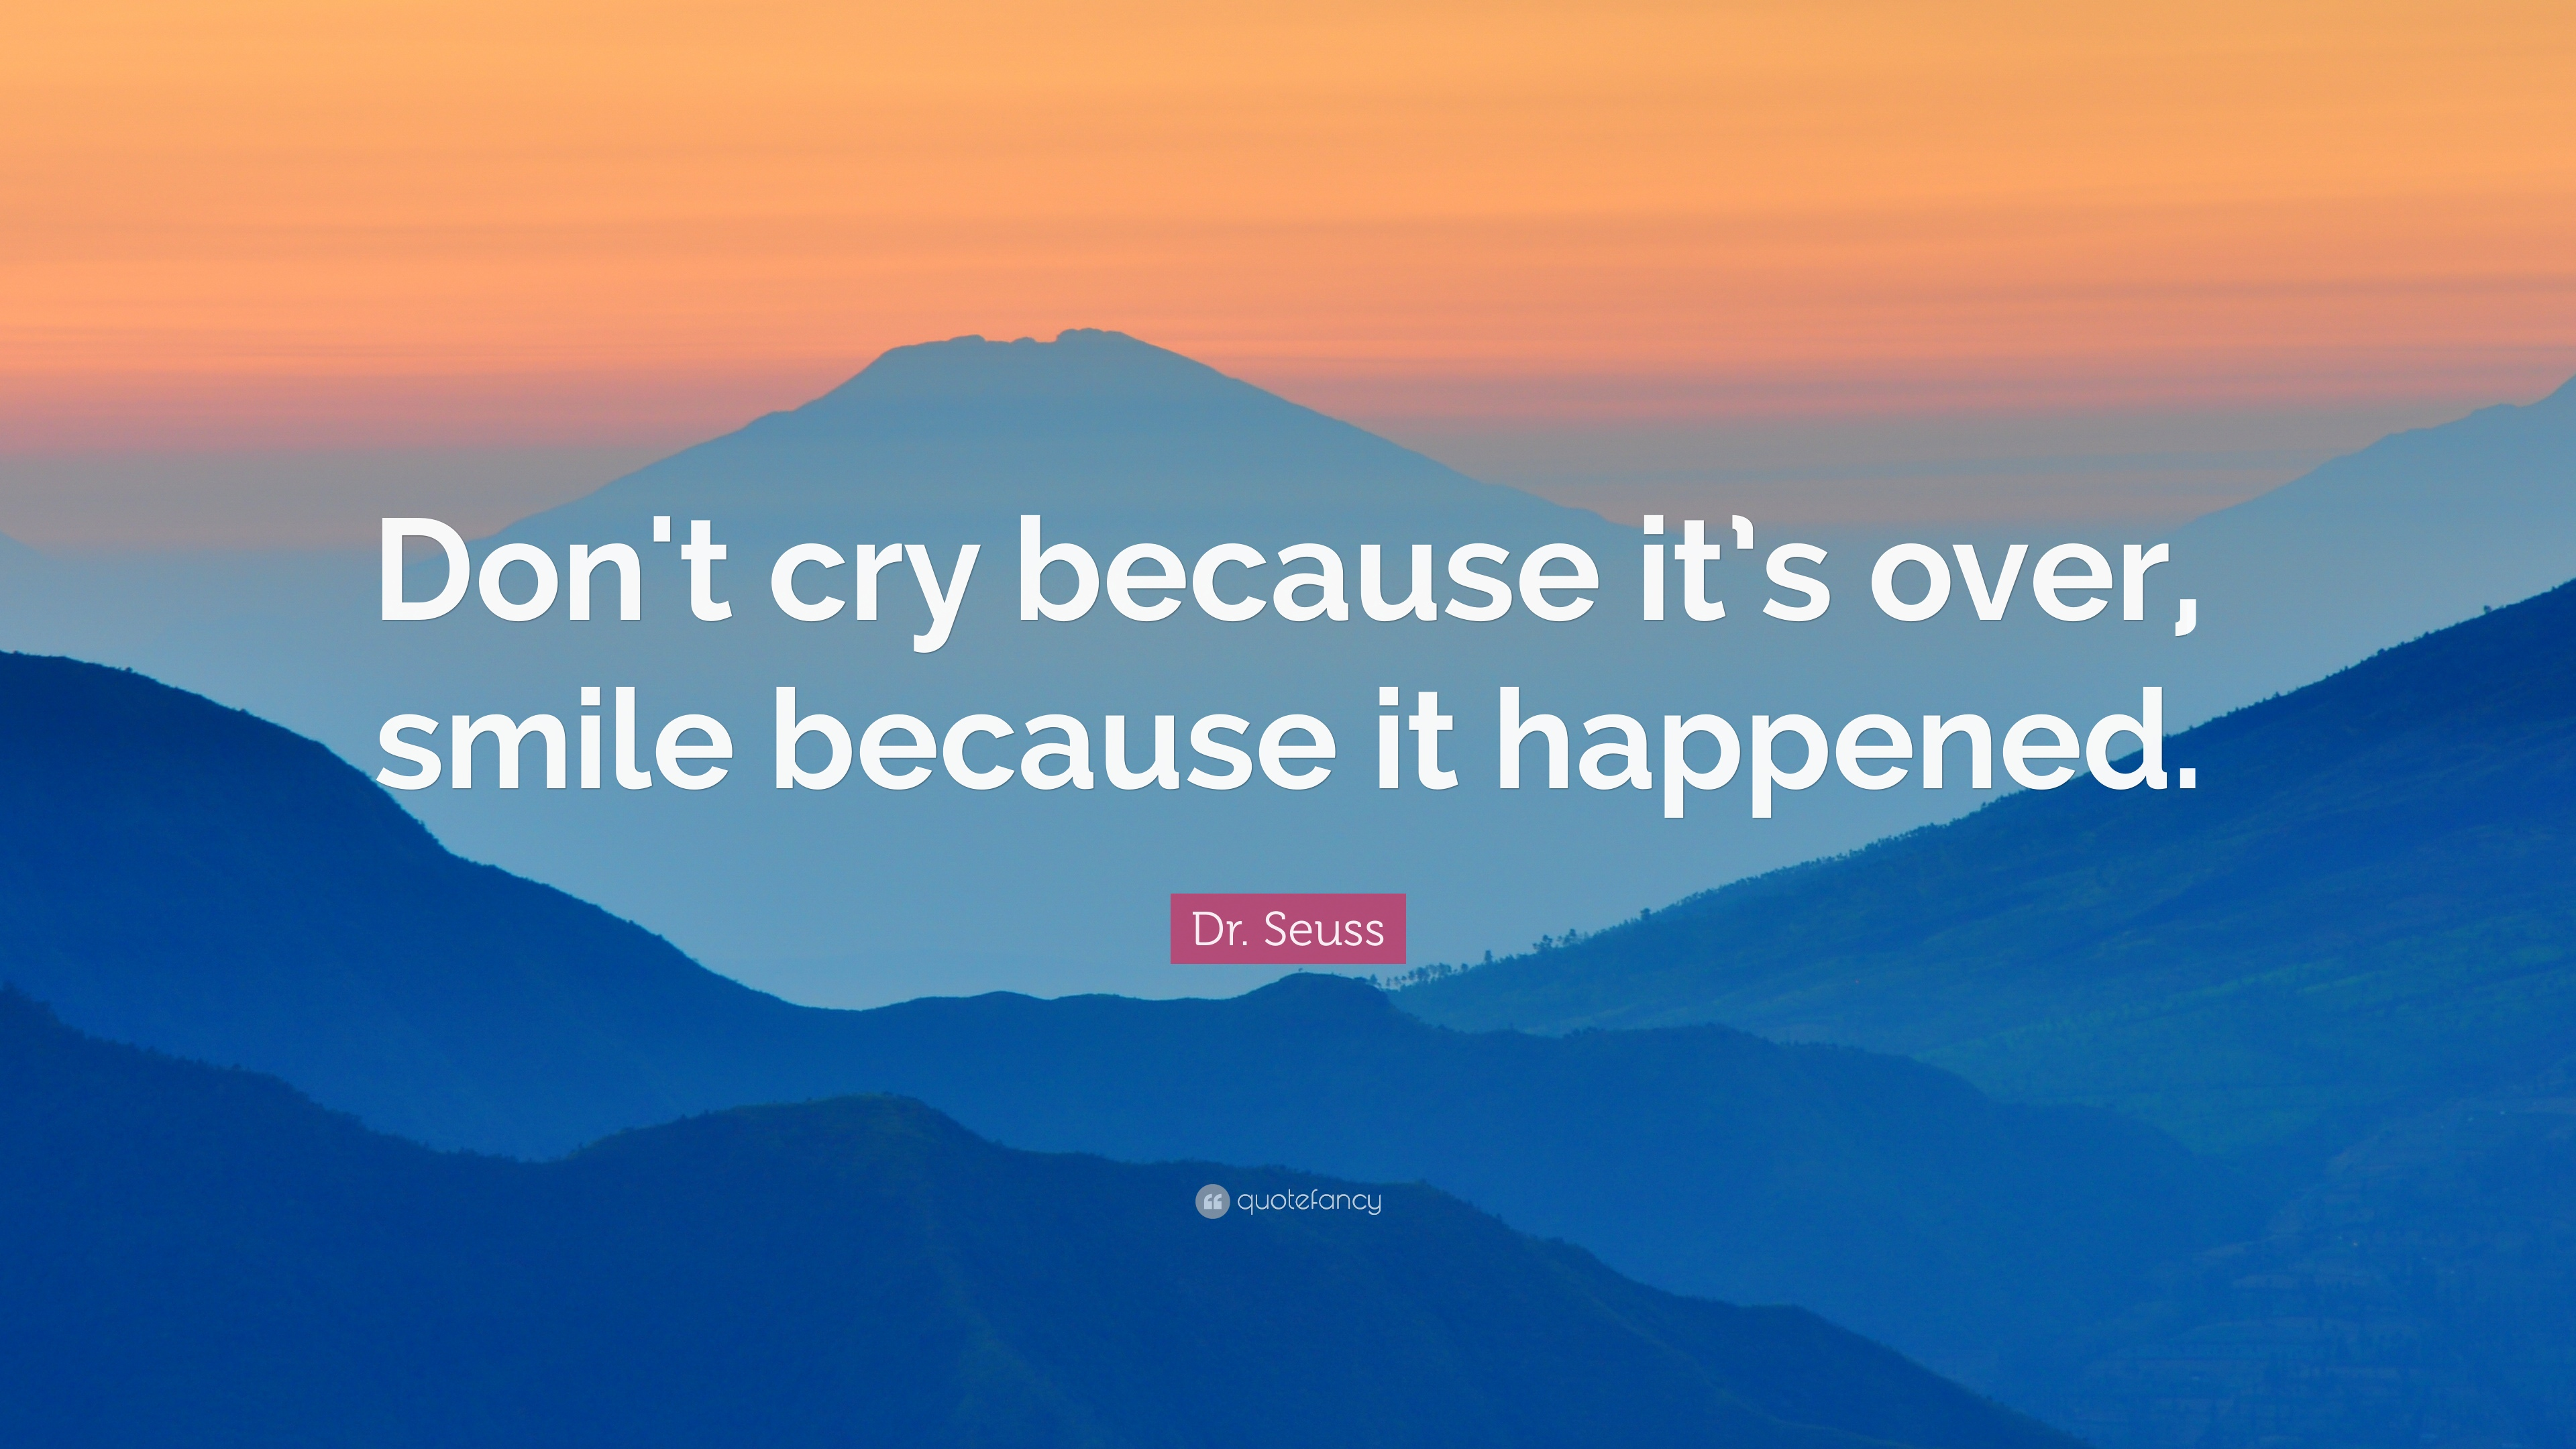 Dalai Lama Quotes Wallpapers Dr Seuss Quote Don T Cry Because It S Over Smile